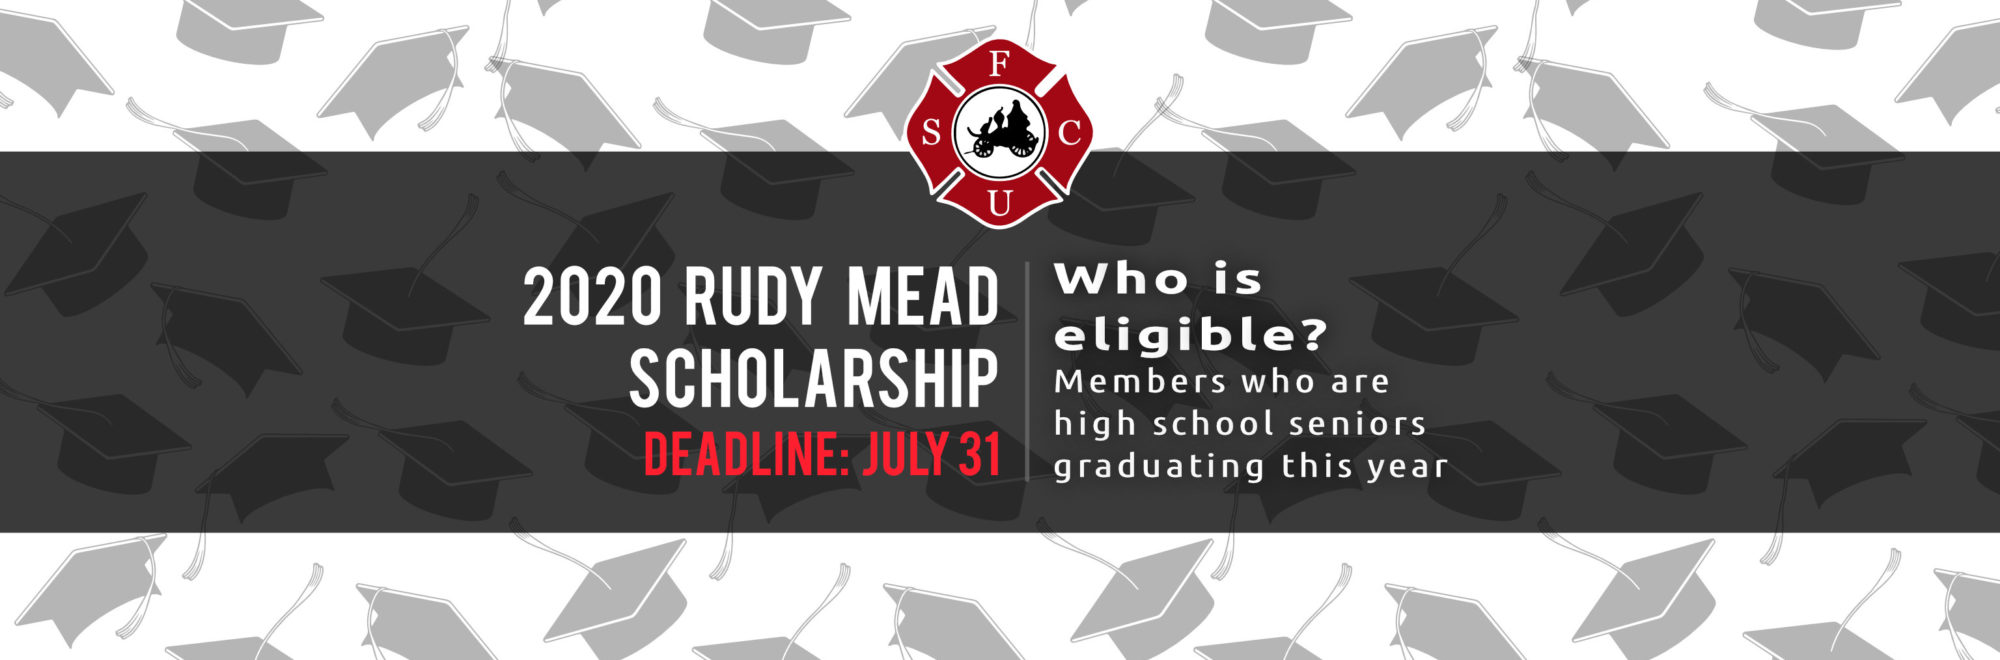 Members who are seniors graduating this year are eligible to apply for the 2020 Rudy Mead Scholarship. Apply by May 22nd.